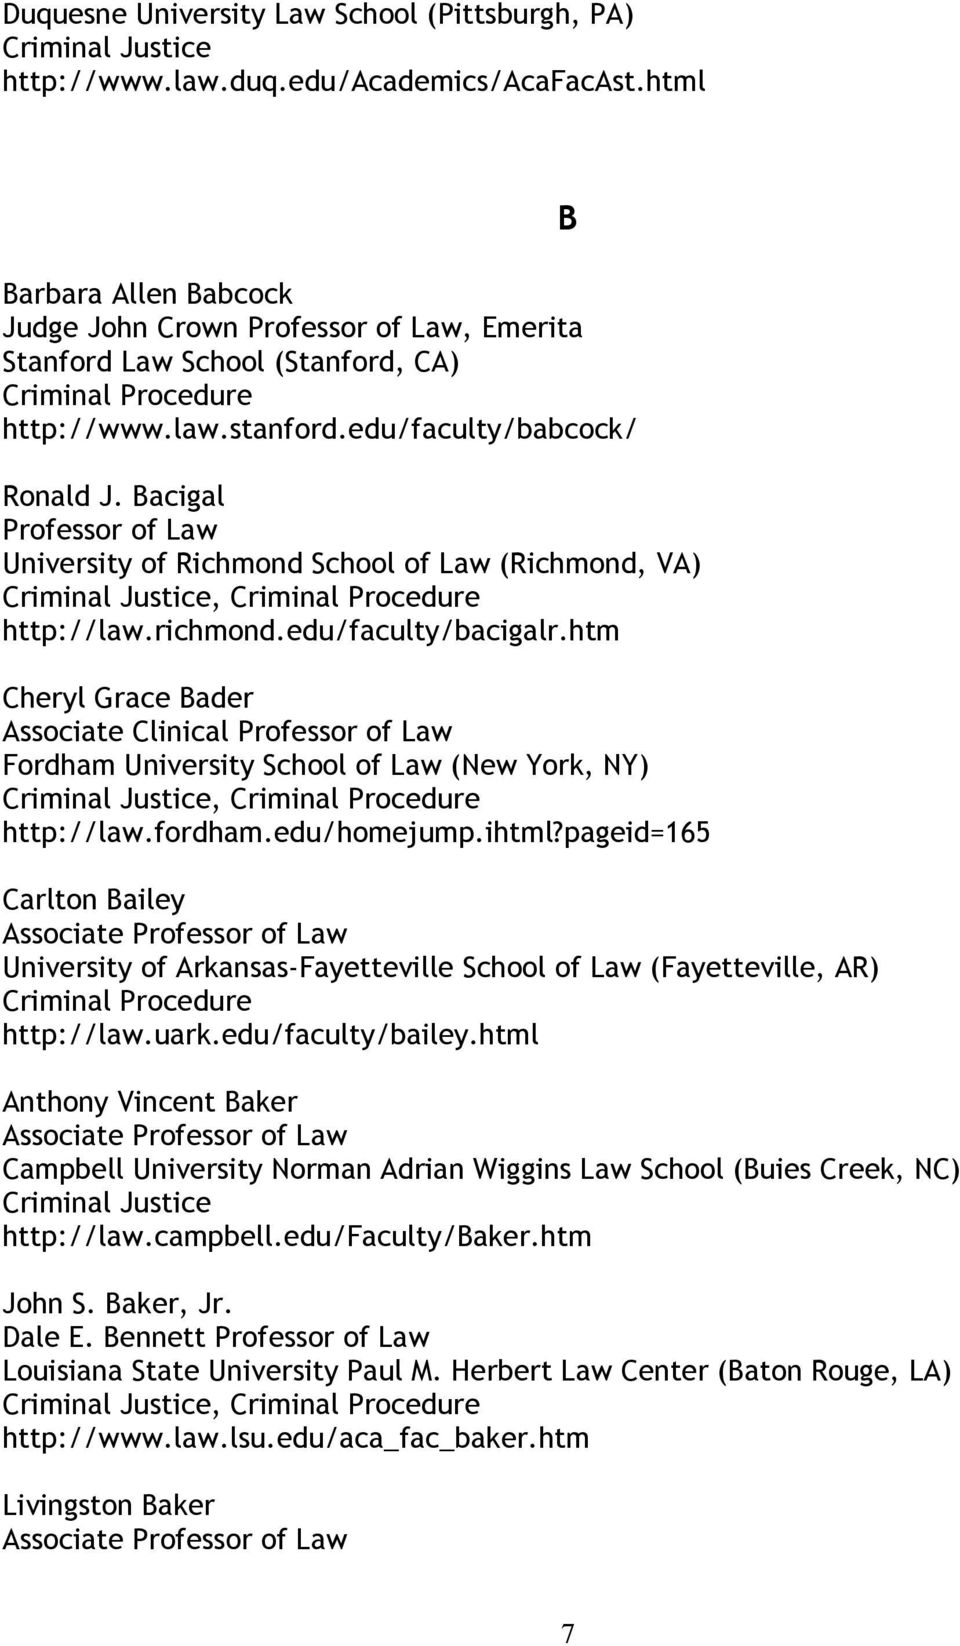 htm Cheryl Grace Bader Associate Clinical Fordham University School of Law (New York, NY), http://law.fordham.edu/homejump.ihtml?